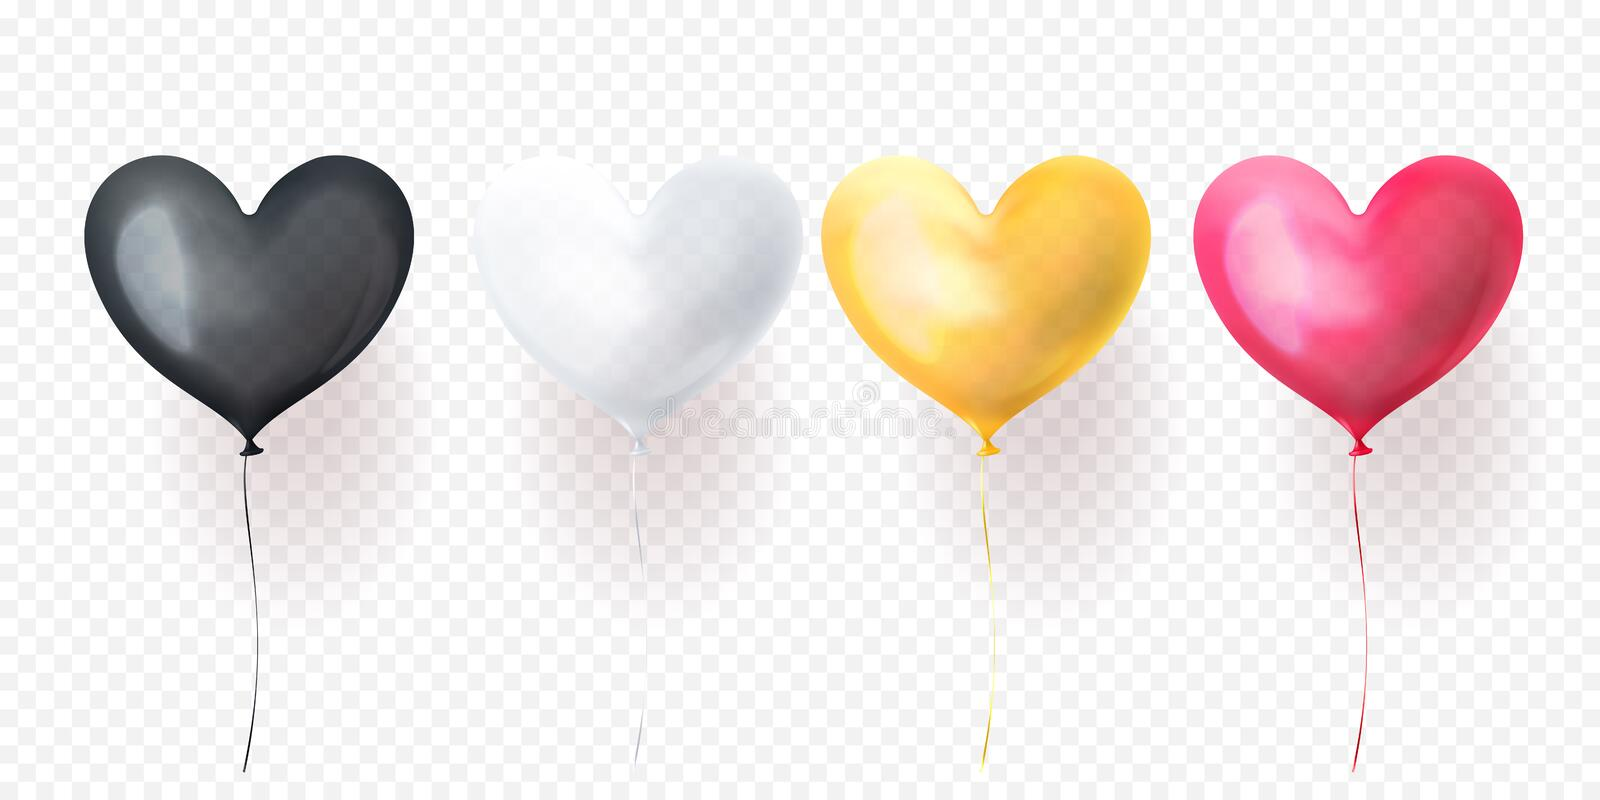 Heart balloon isolated glossy ballons for Valentines Day, wedding or birthday greeting card design. Vector heart helium balloon bl vector illustration